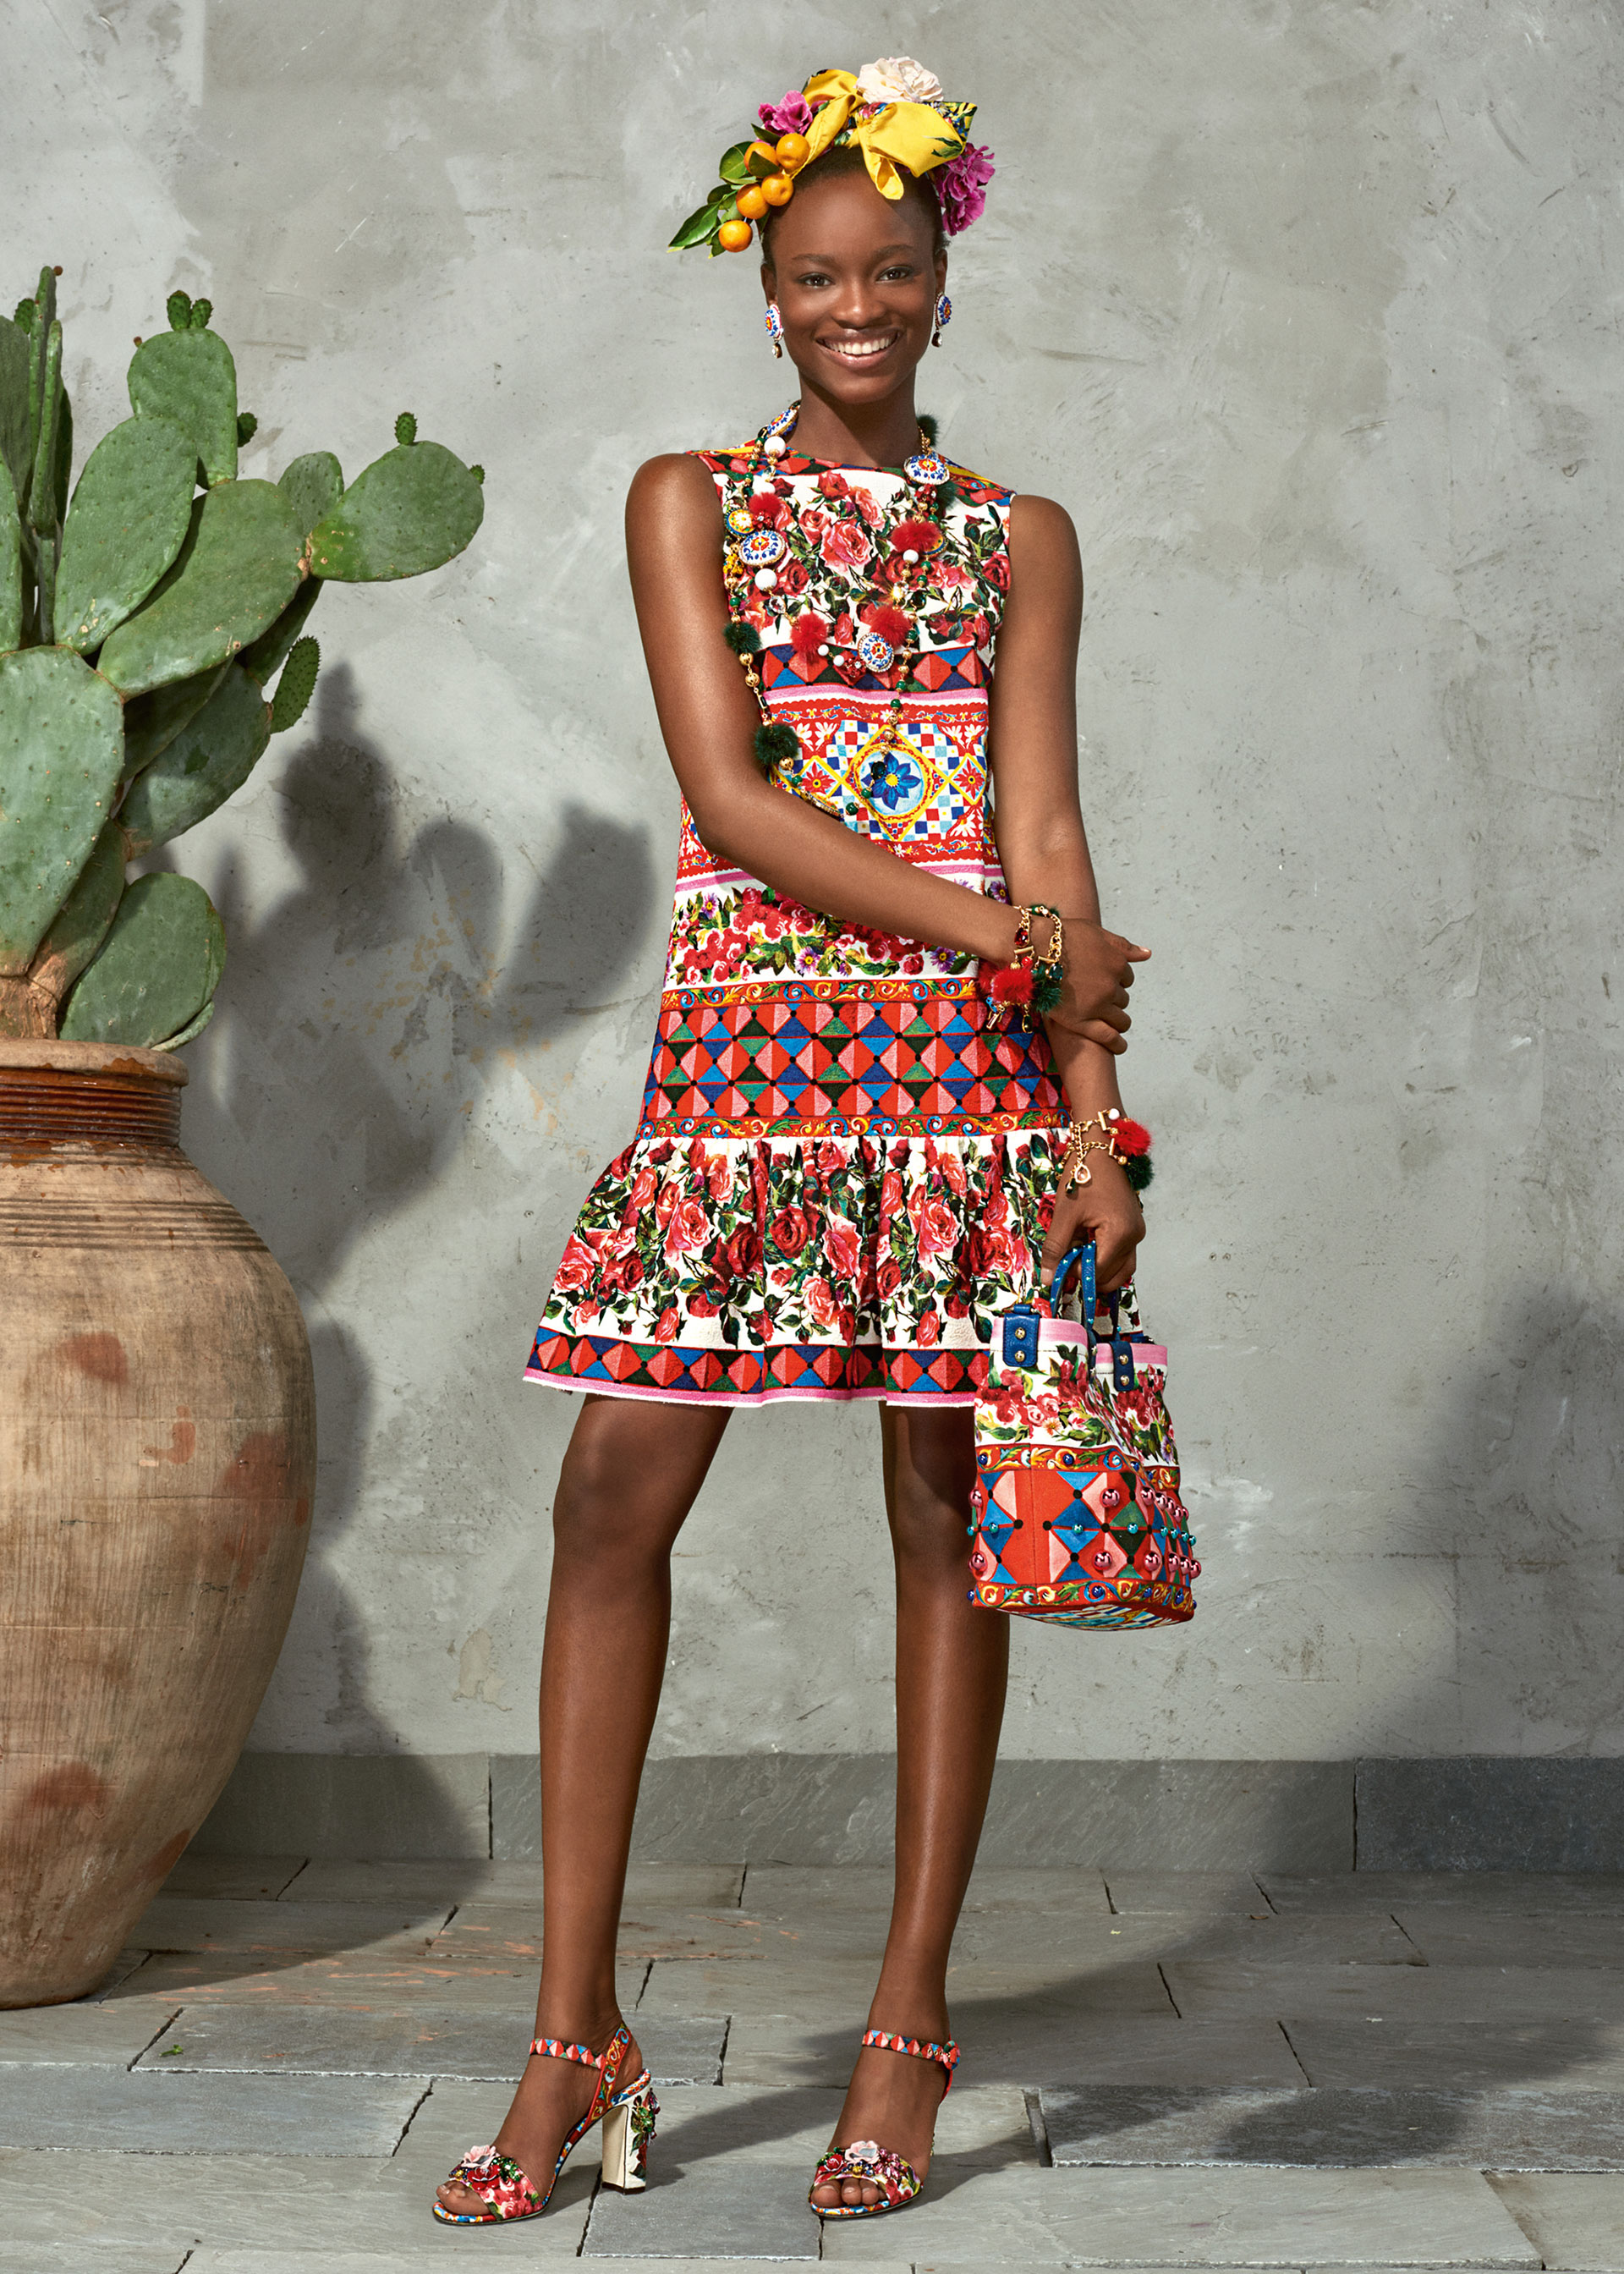 dolce and gabbana summer 2017 woman collection 96 - Dolce & Gabbana/Spring Summer 2017 Collection/ Mambo